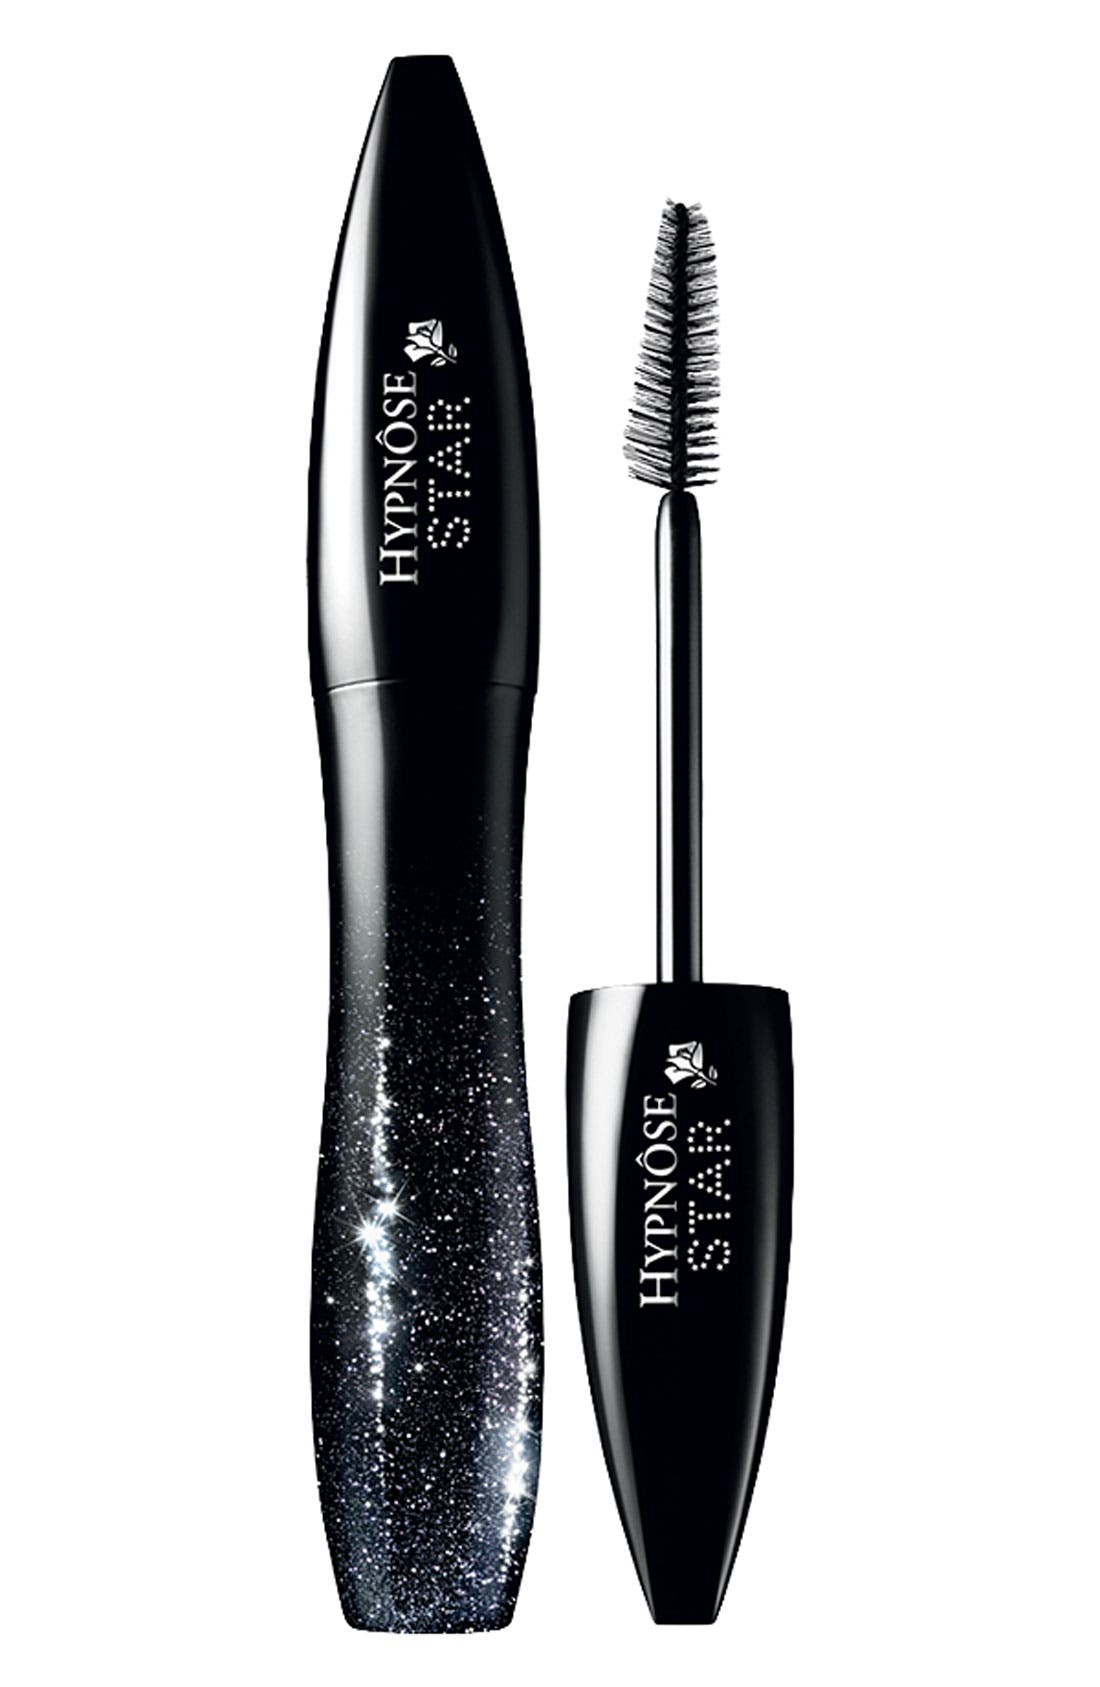 'Hypnôse Star' Mascara,                         Main,                         color, 001